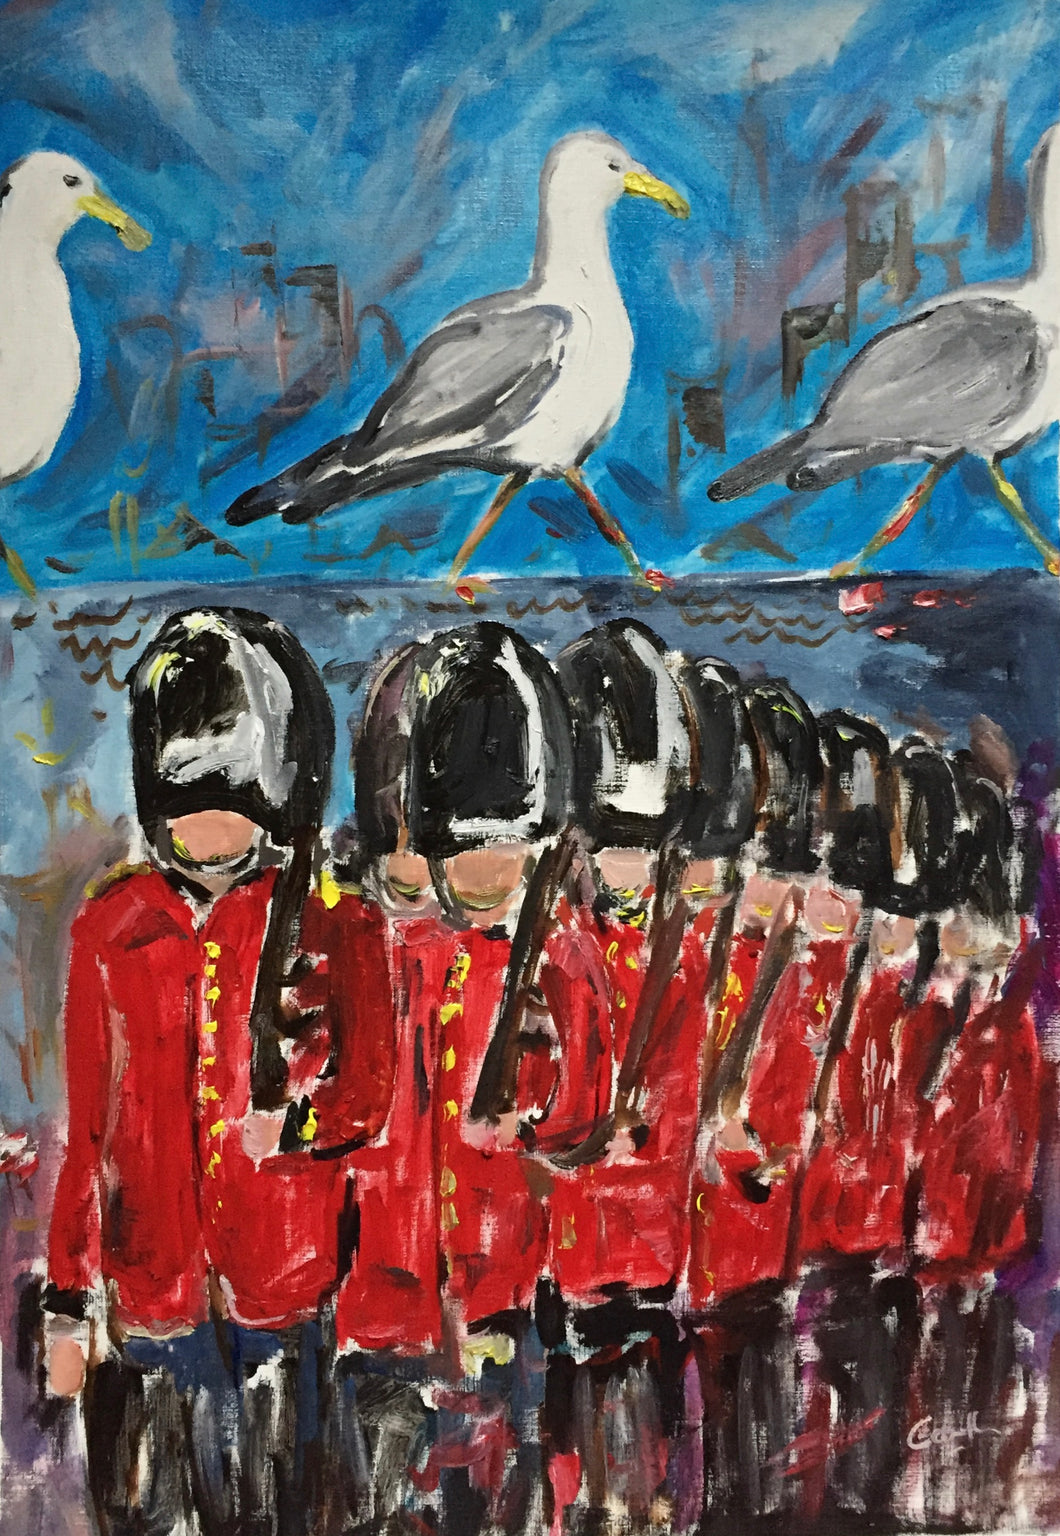 Seagulls and Soldiers - Trooping the colour - Soldier Painting